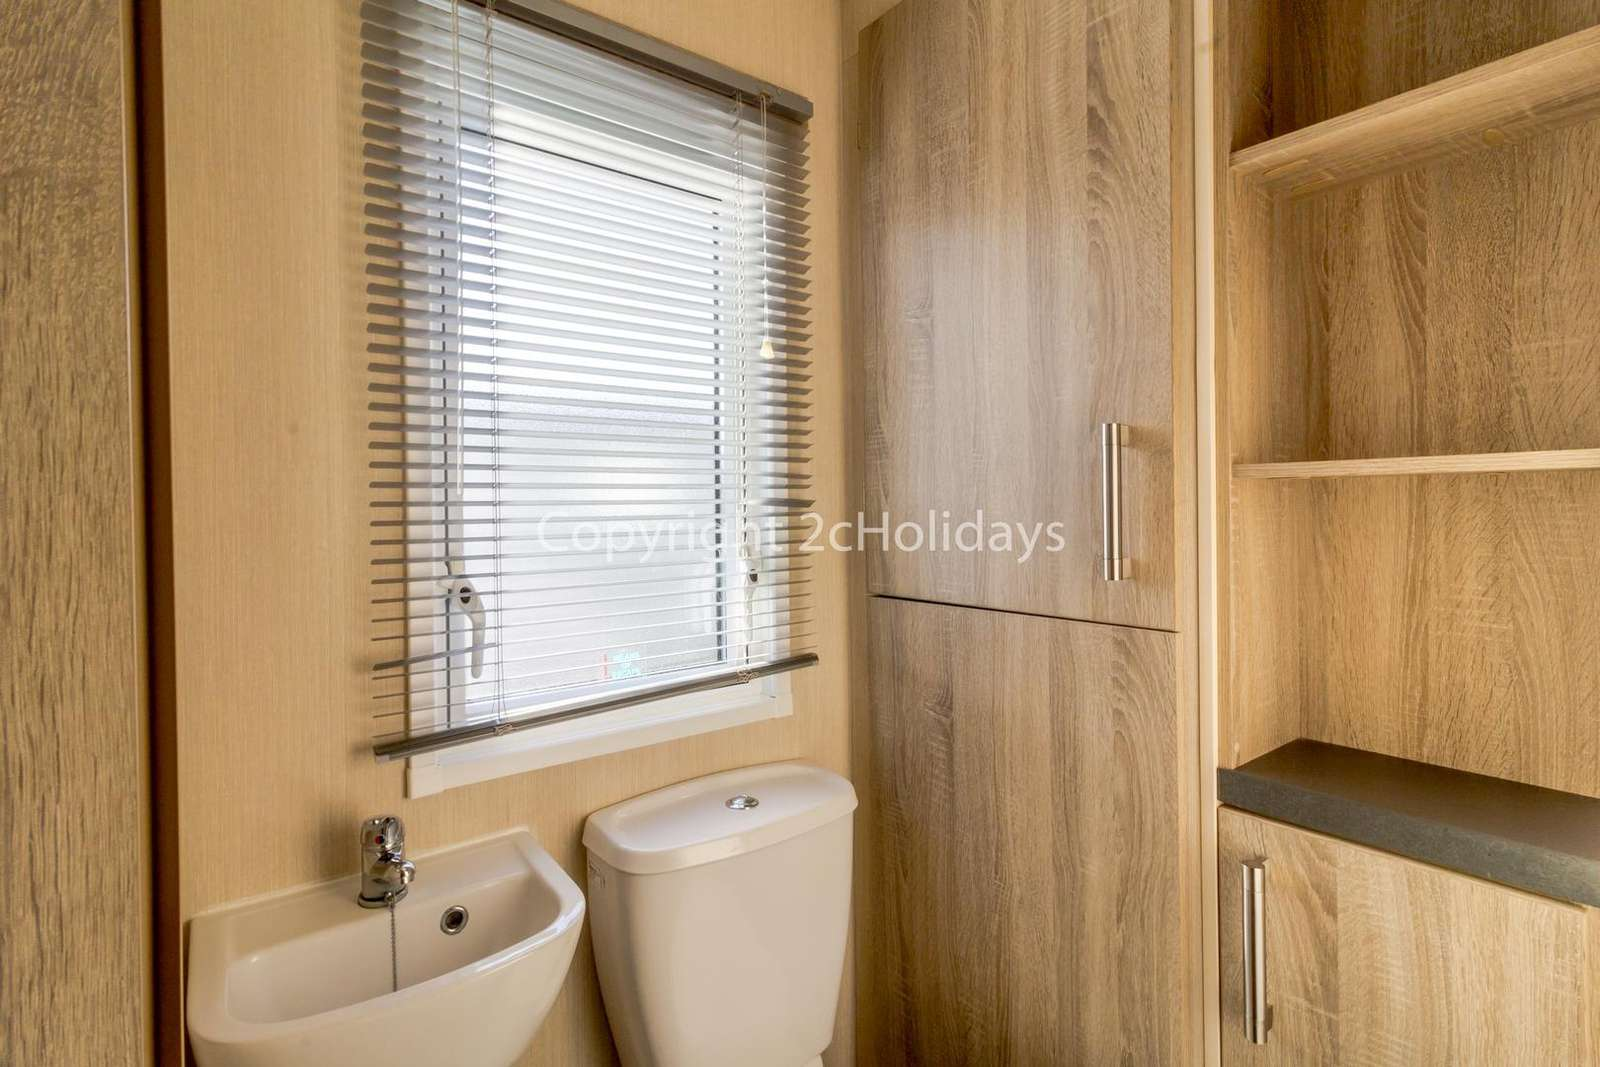 We can ensure that all our holiday homes are cleaned to a high standard!